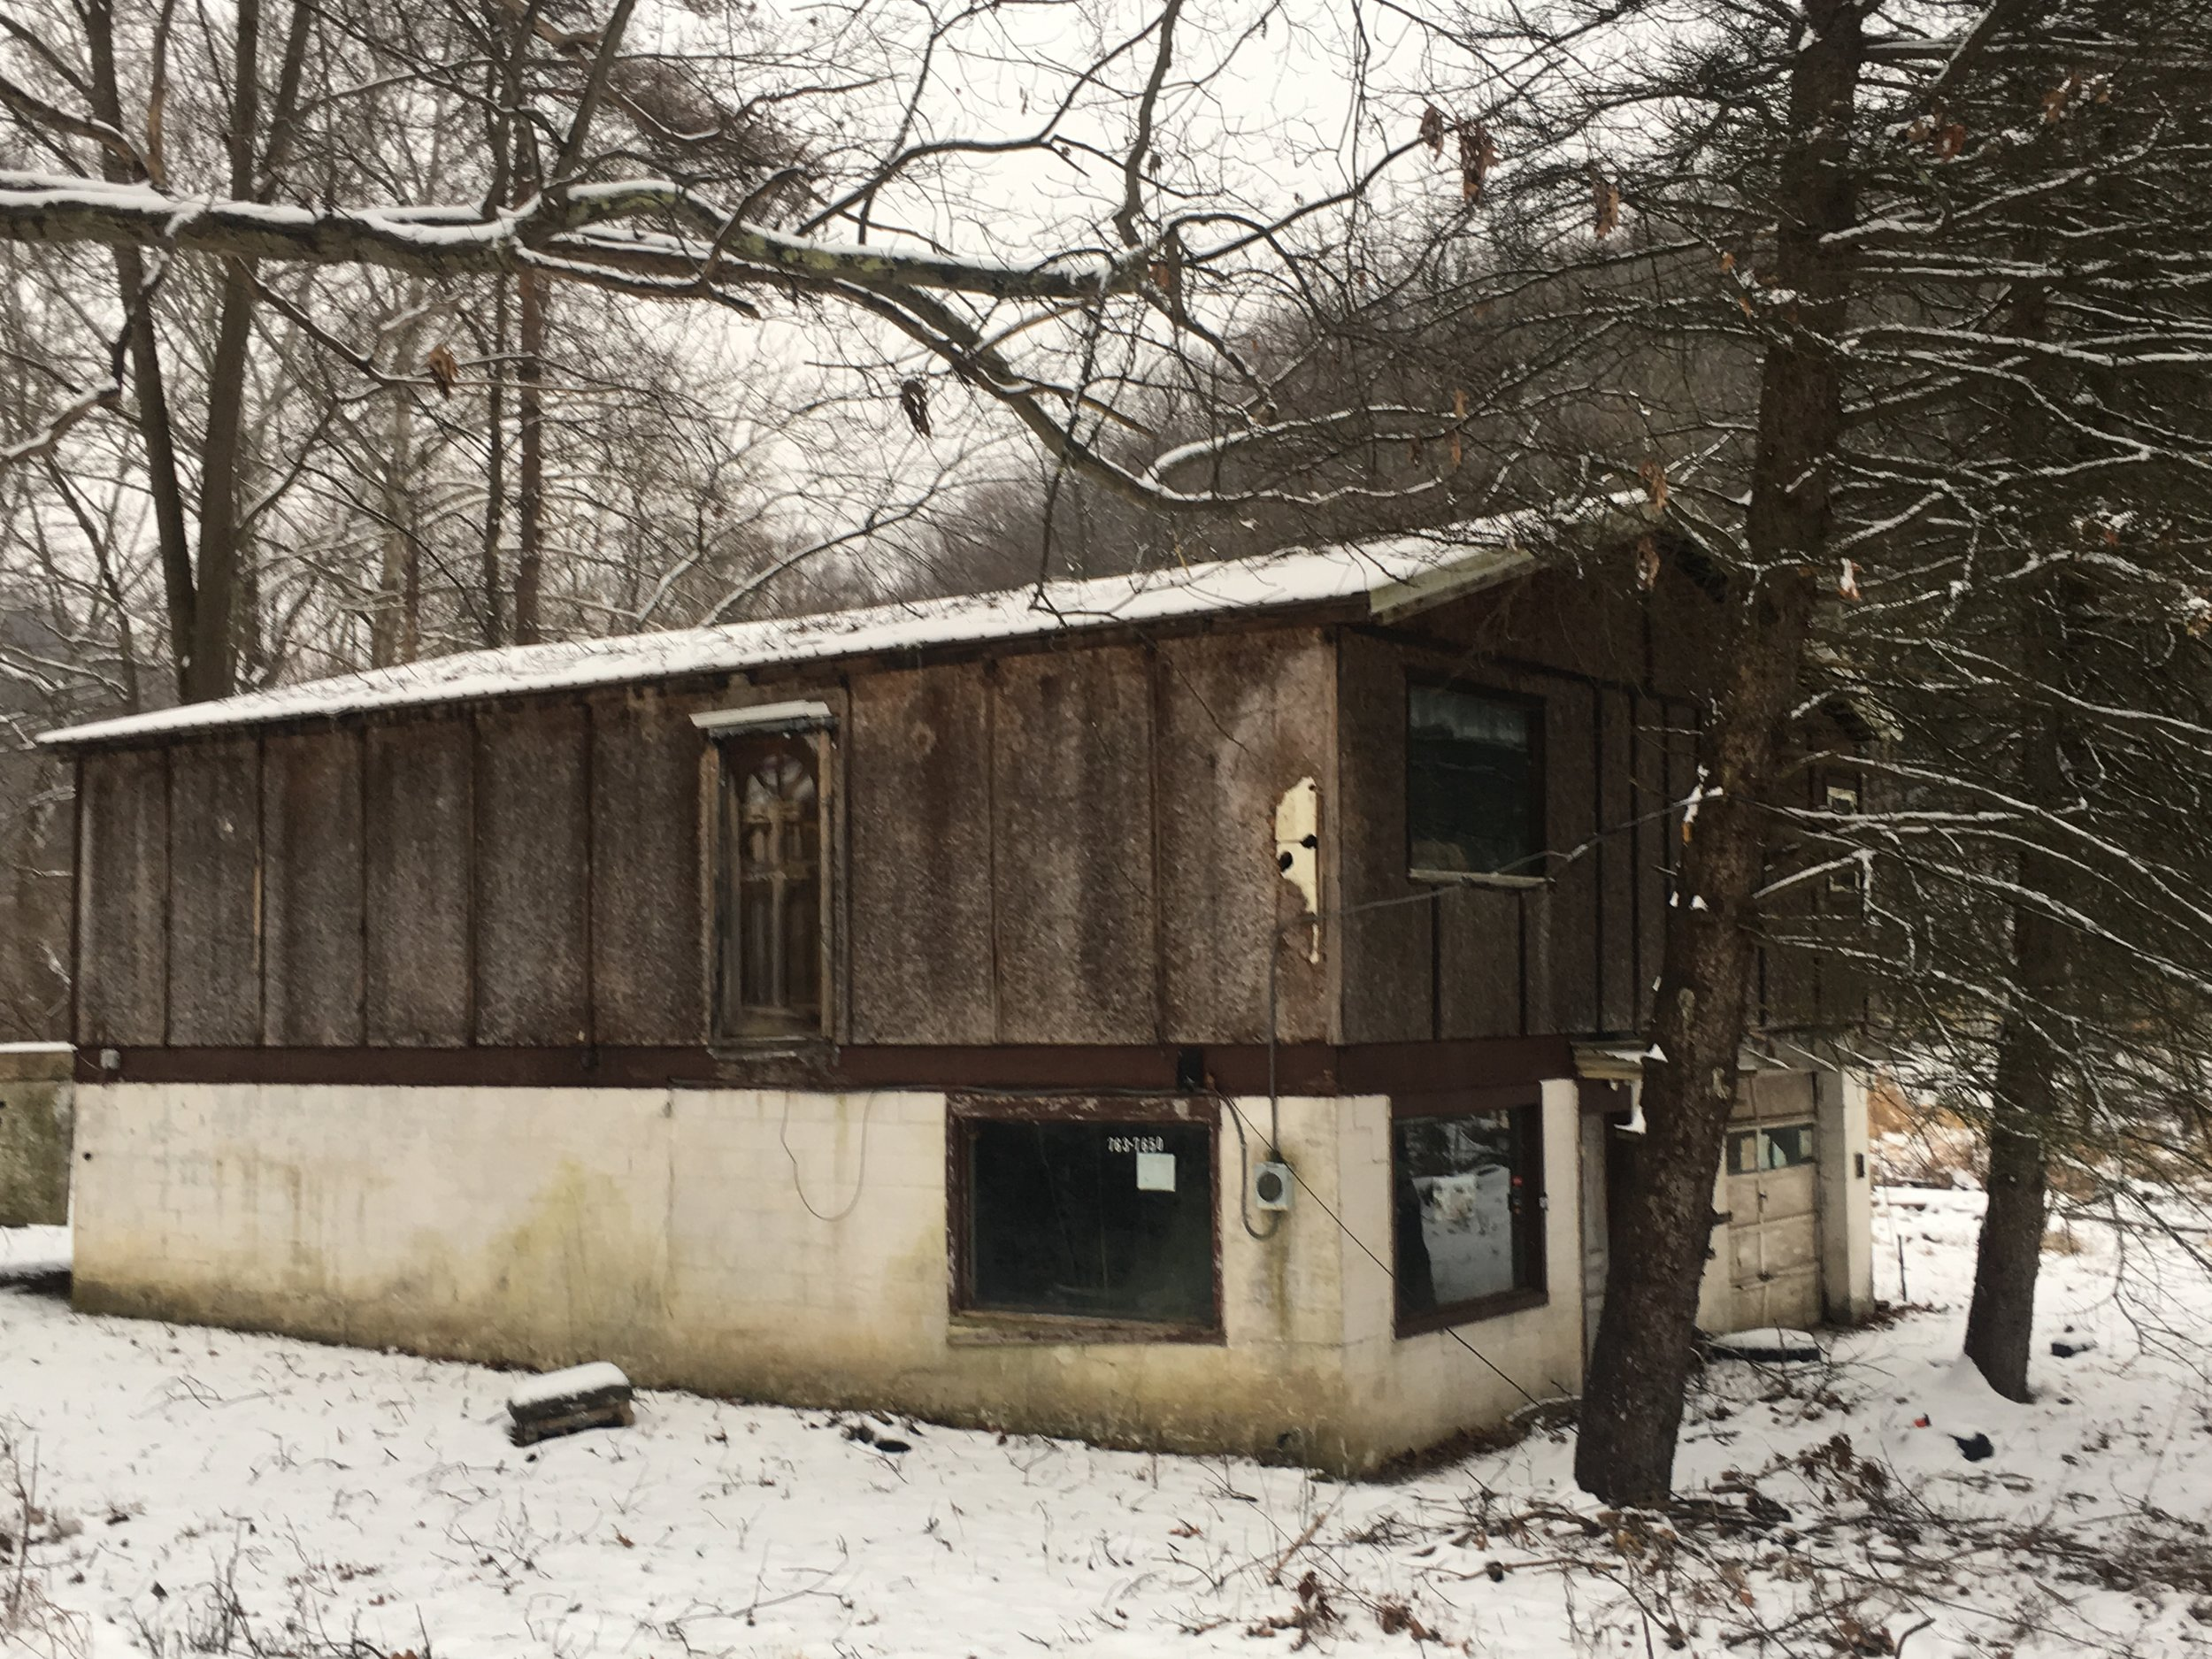 "This is 162 Glade Run Road, Kittanning PA 16201. This .624 acre property for years was ""Zestimated"" at $112,350. On February 28, 2019 the property sold for $8,000… an error of 93%. BUT WAIT THERE'S MORE!! Once the property transferred, Zillow adjusted the new Zestimate."